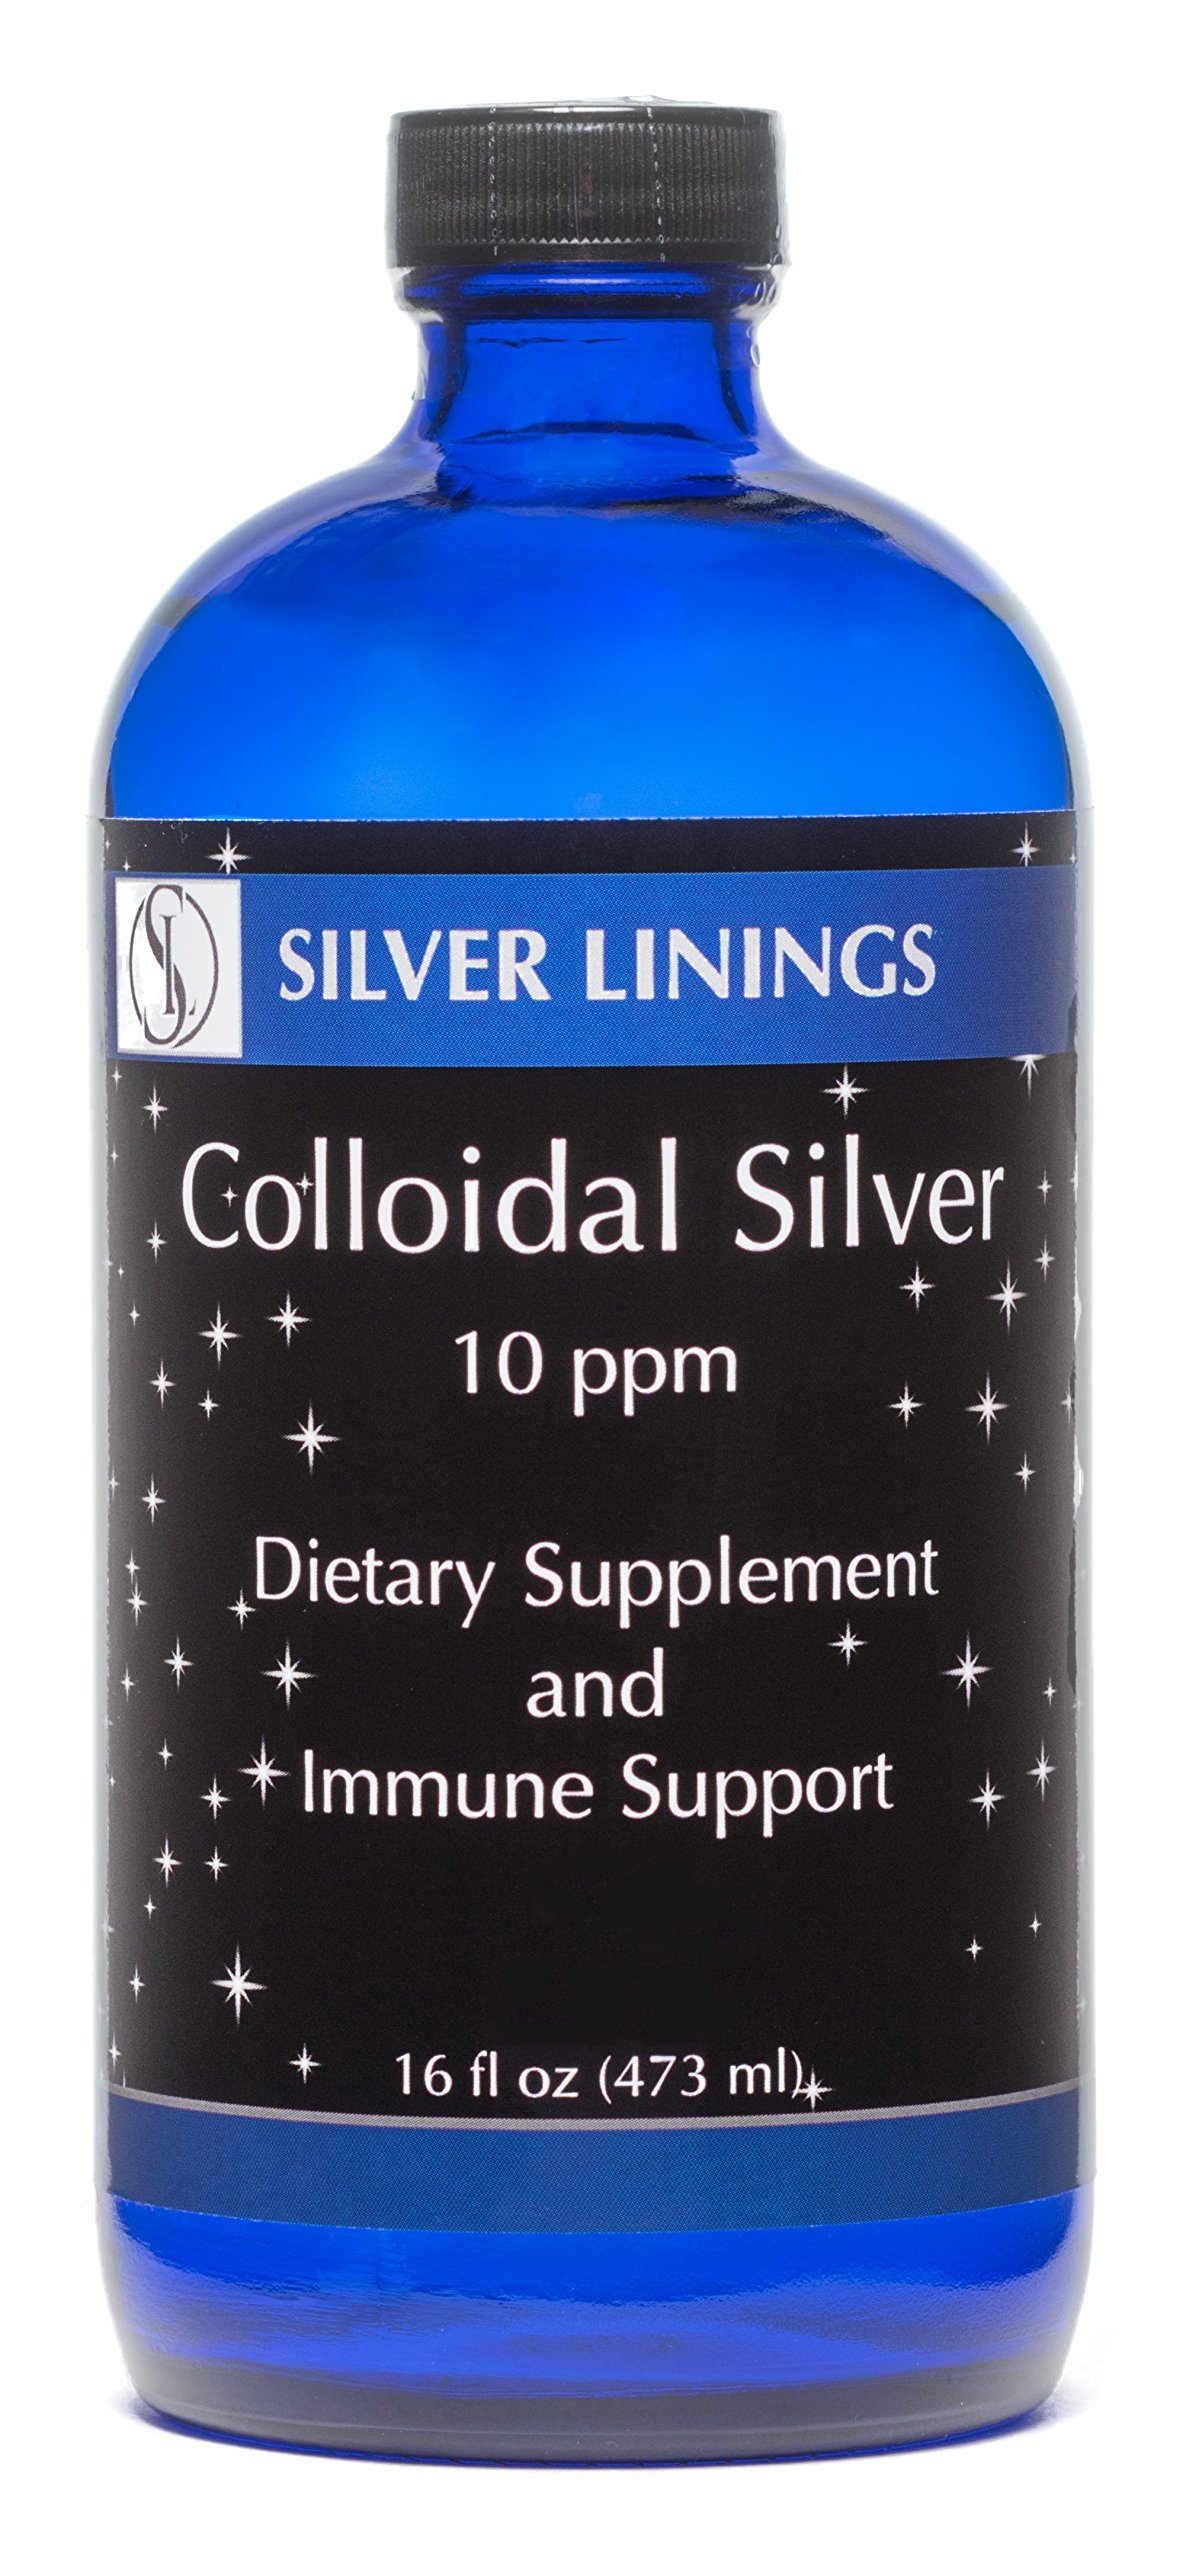 Silver Linings Colloidal Silver Hydrosol, 10 PPM, A Powerful Natural Antibiotic, and Preventative Measure Against Infection, Immune Support, Safe for Adults, Kids, Pets, and Plants, 16 oz by Silver Linings (Image #1)